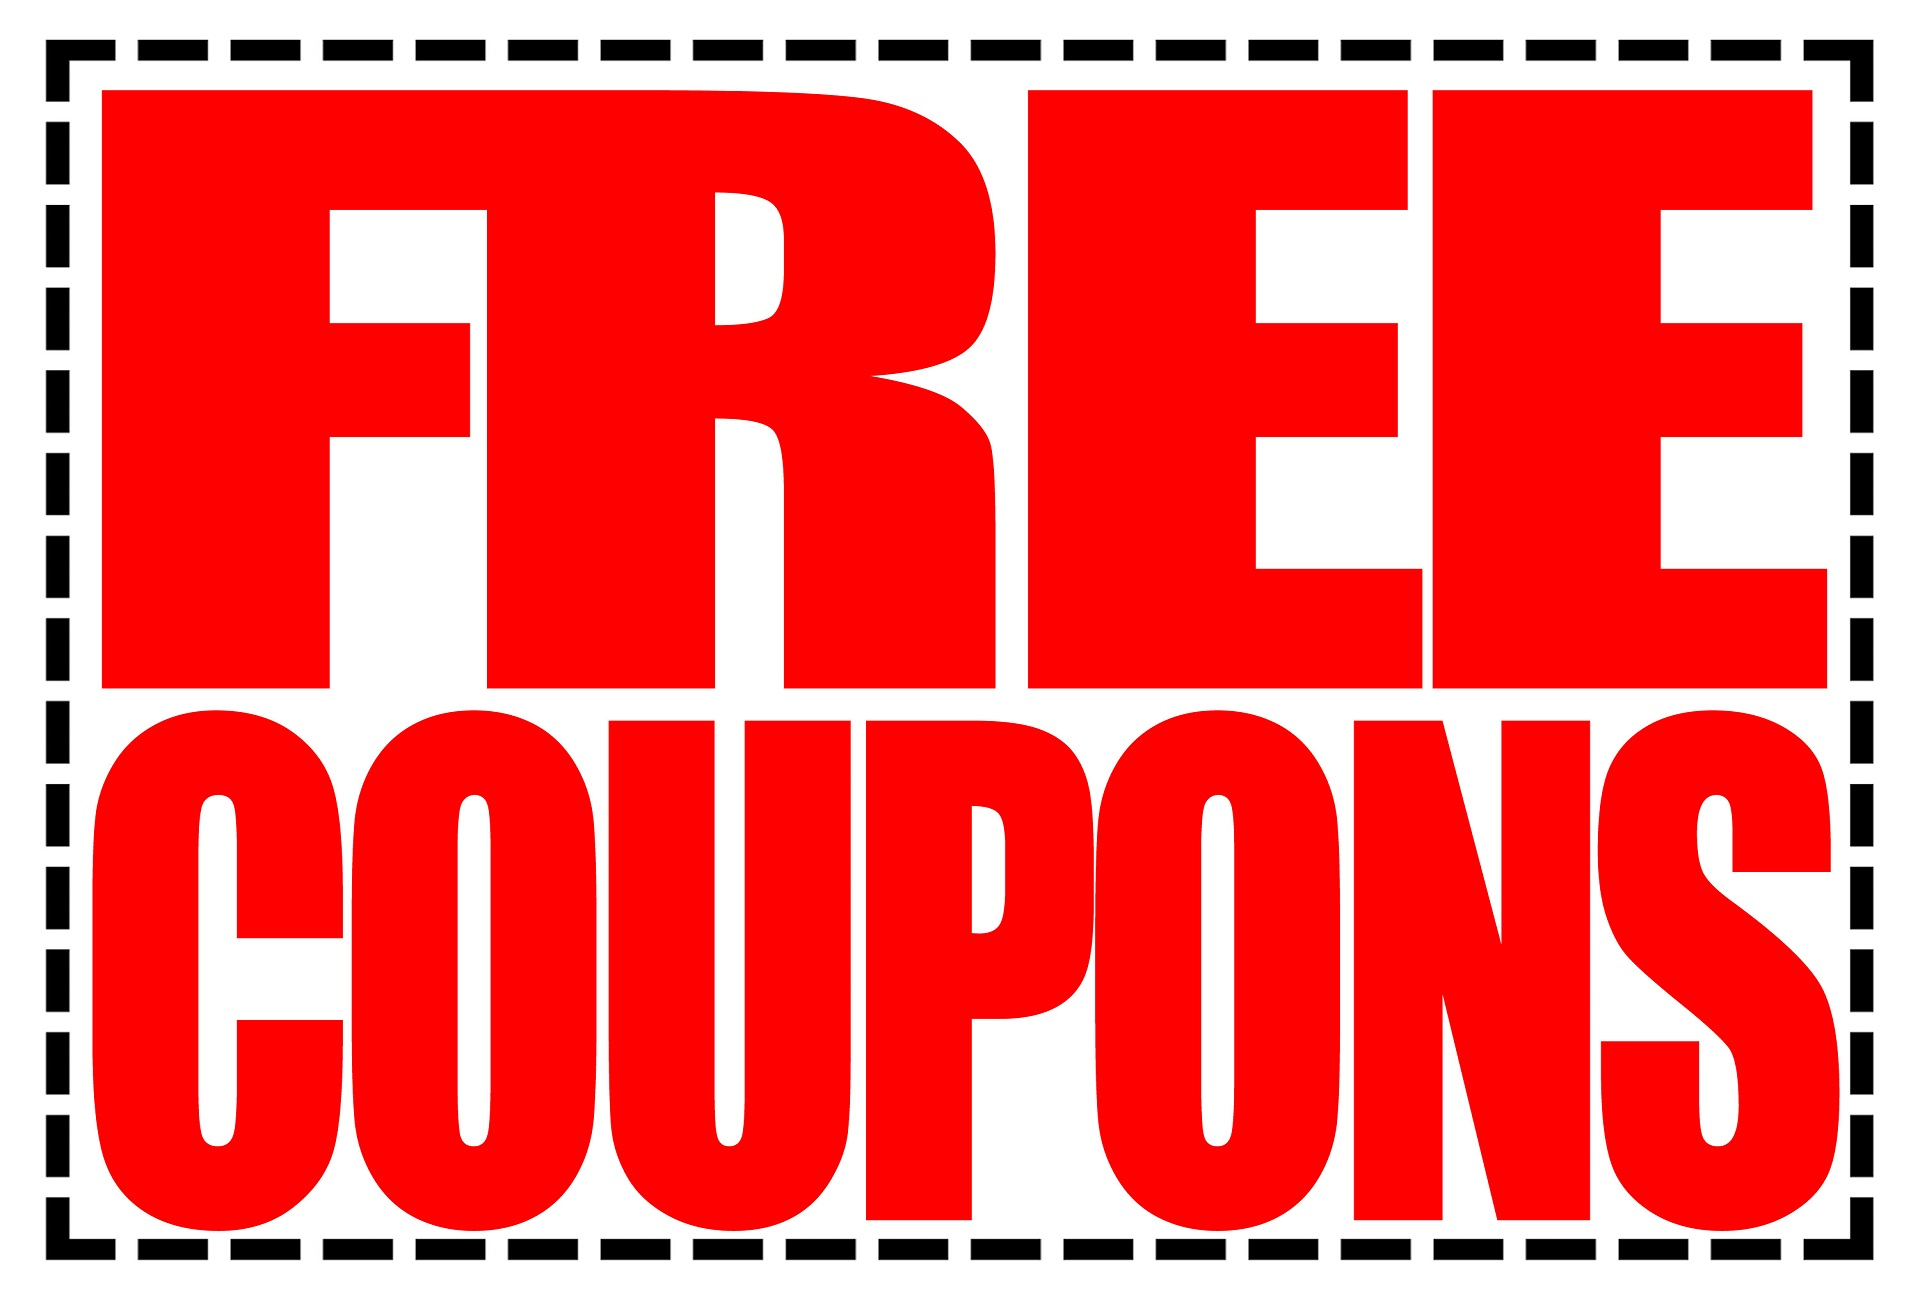 Deep discount coupon code